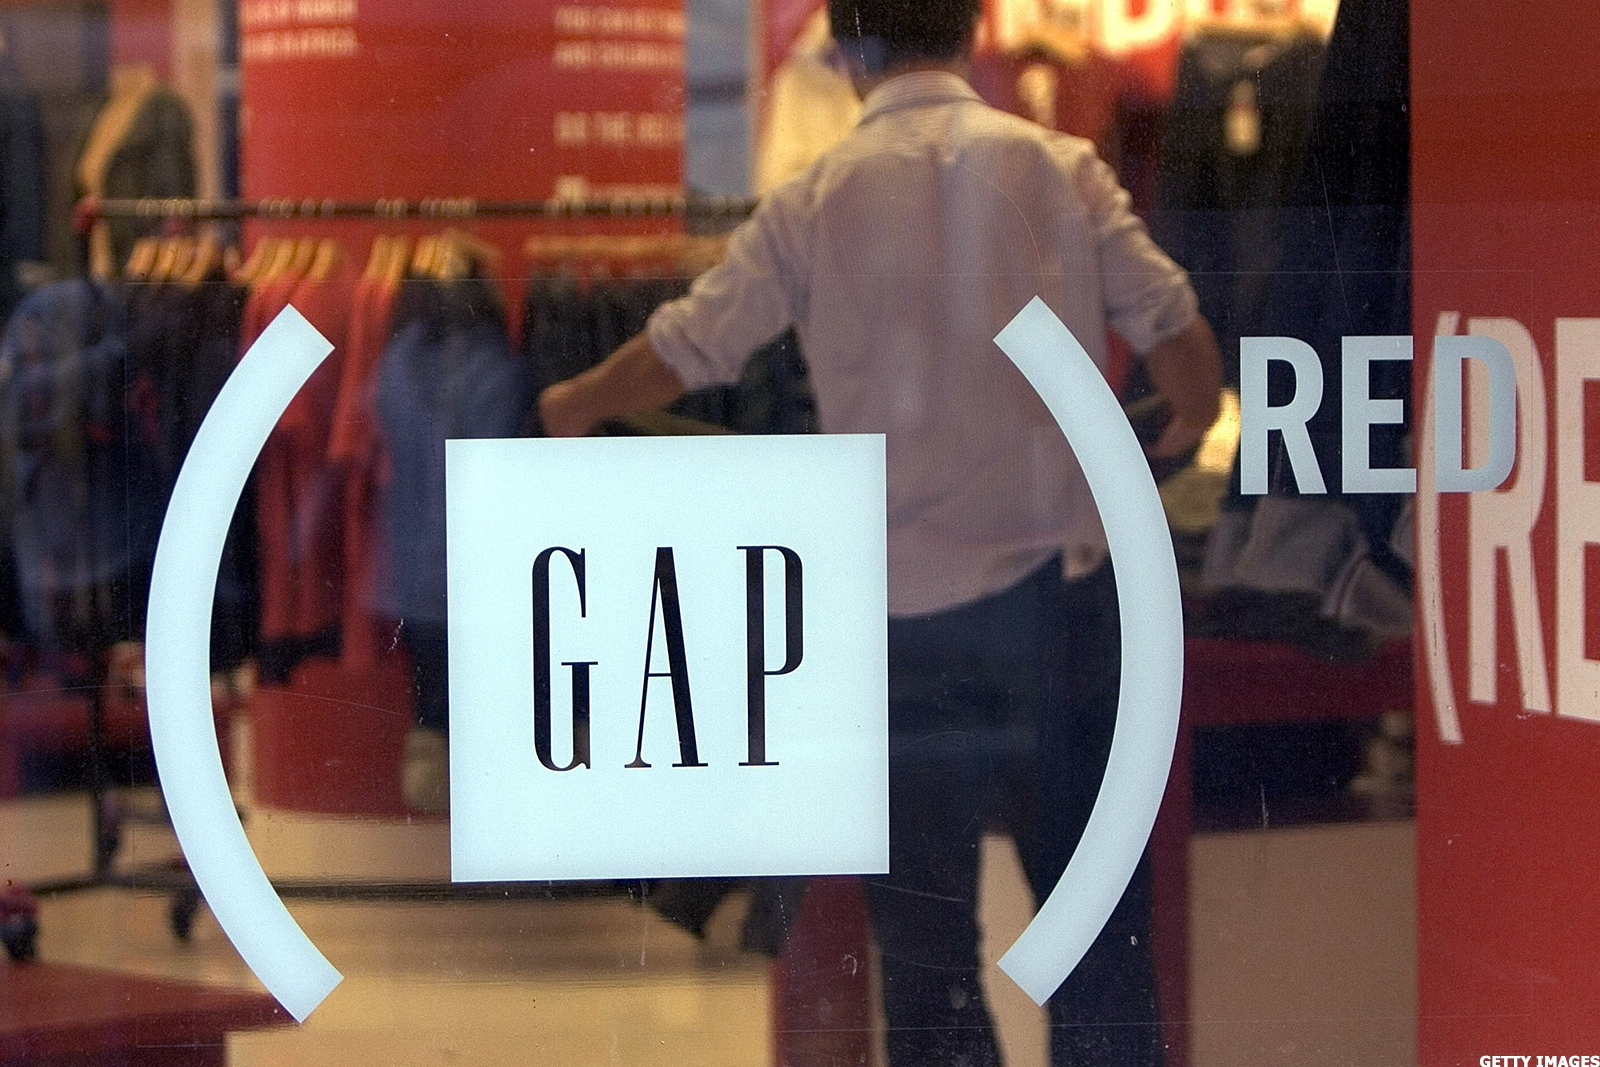 Gap gps stock gains in after hours trading on international gap gps stock gains in after hours trading on international store closures thestreet buycottarizona